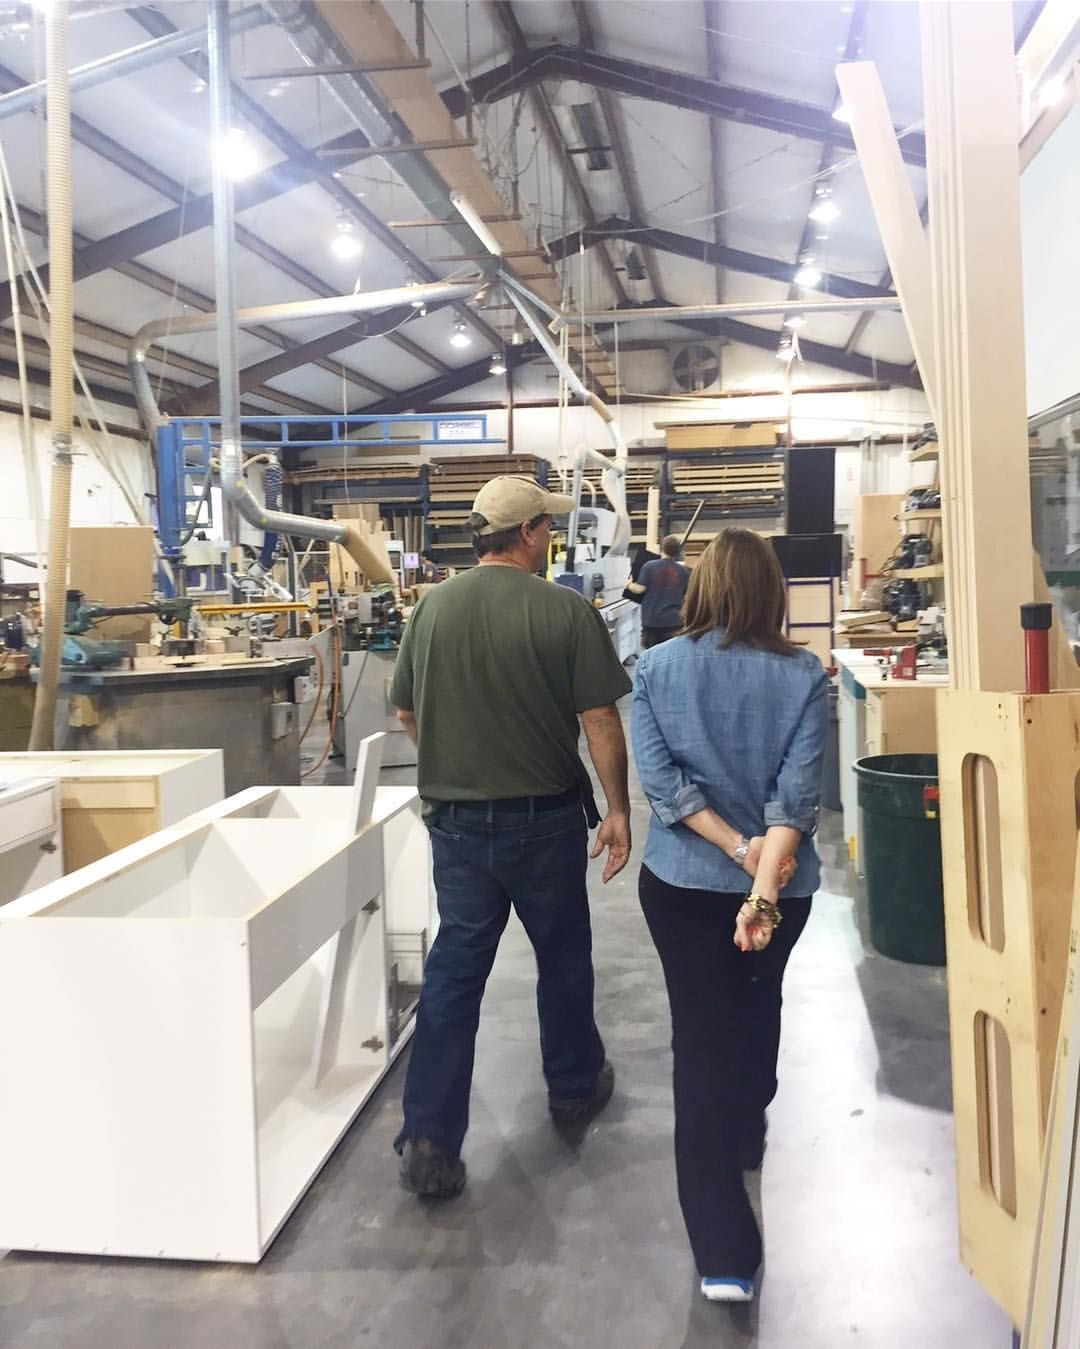 """121 Likes, 2 Comments - Ivette Arango Interior Design (@ivettearangointeriordesign) on Instagram: """"#BehindTheScenes- Inspecting custom cabinetry work for a project in Tallahassee! 🔨…"""""""